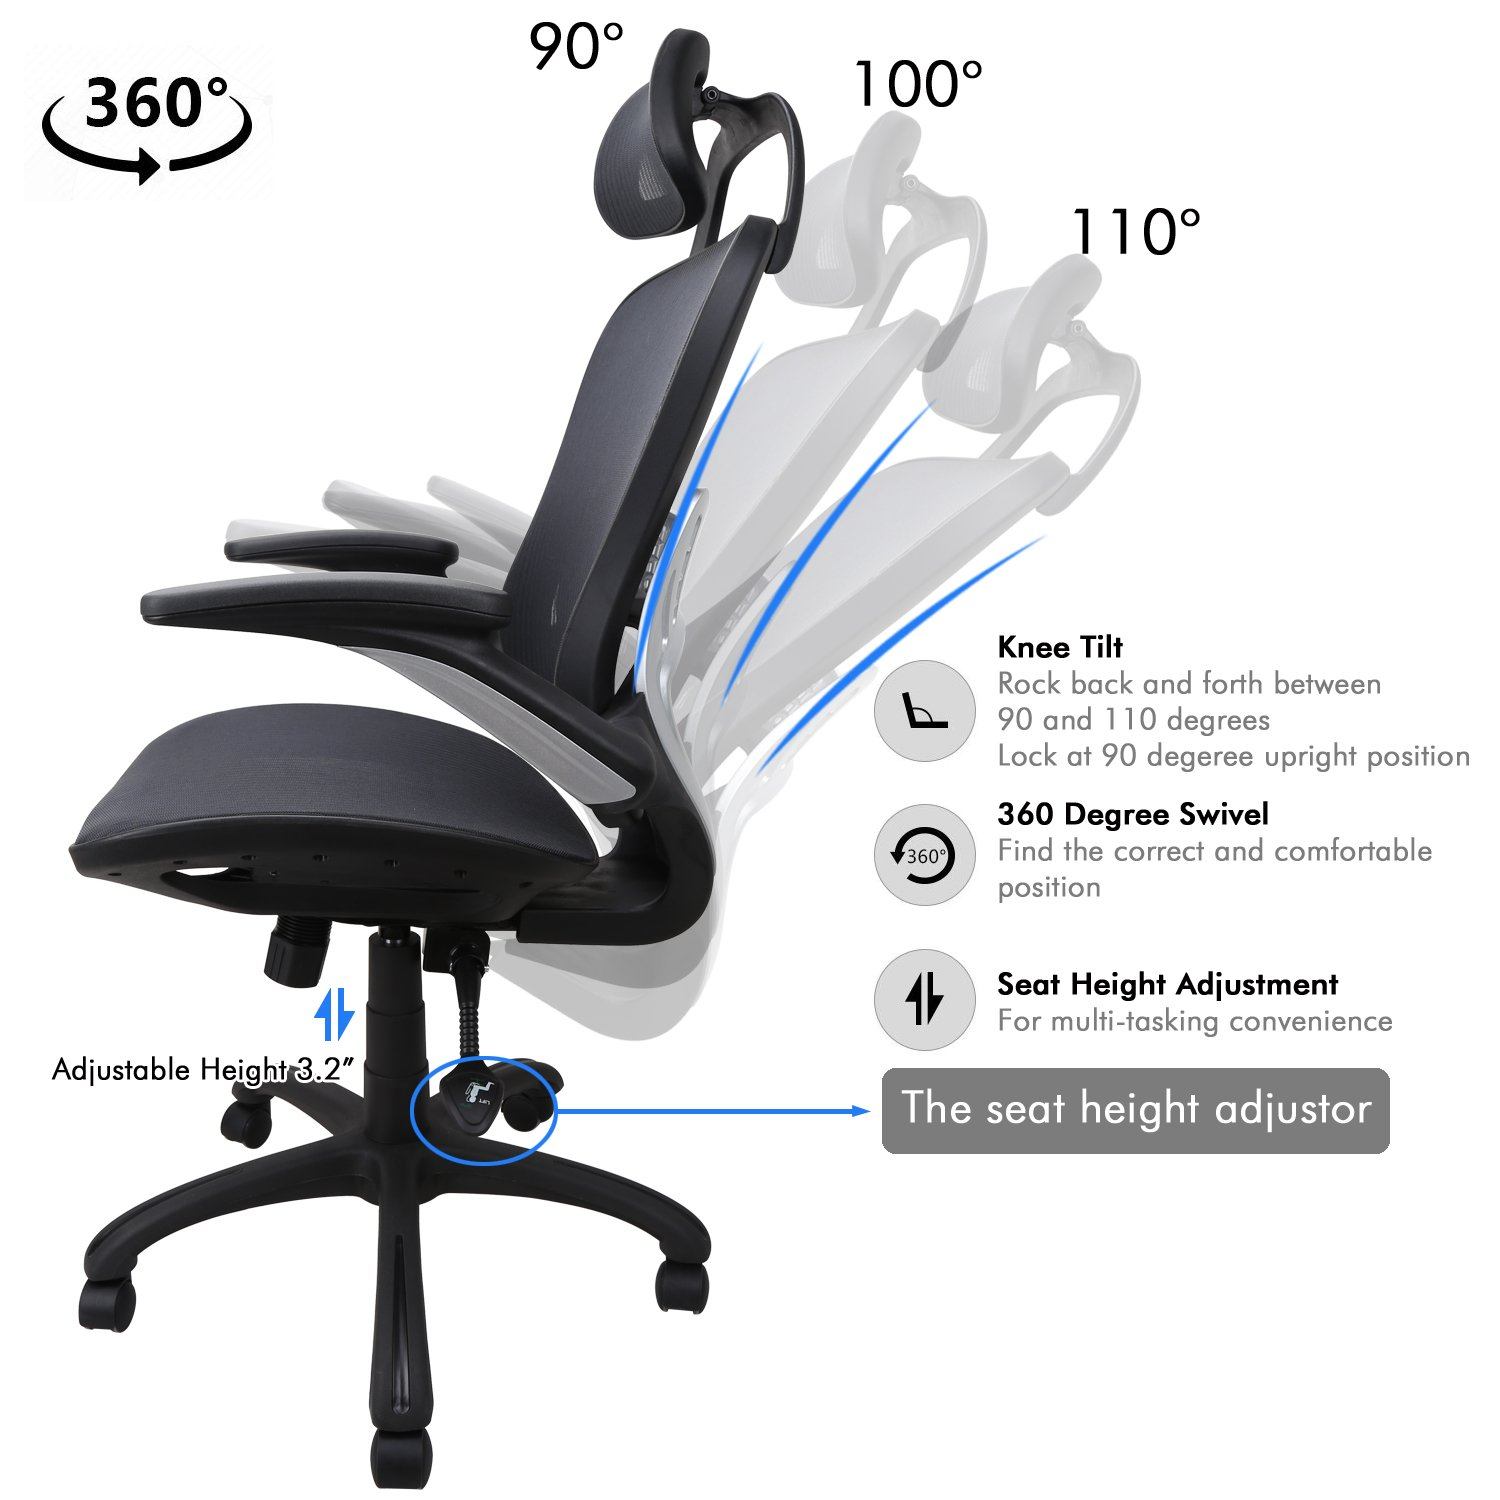 Komene Ergonomic Chairs for Office &Home: Passed BIFMA/SGS Weight Support Over 300Ibs,The Most Comfortable Mesh Cushion&High Back-Adjustable Headrest Backrest,Flip-up Armrests,360-Degree Swivel Chairs by Komene (Image #2)